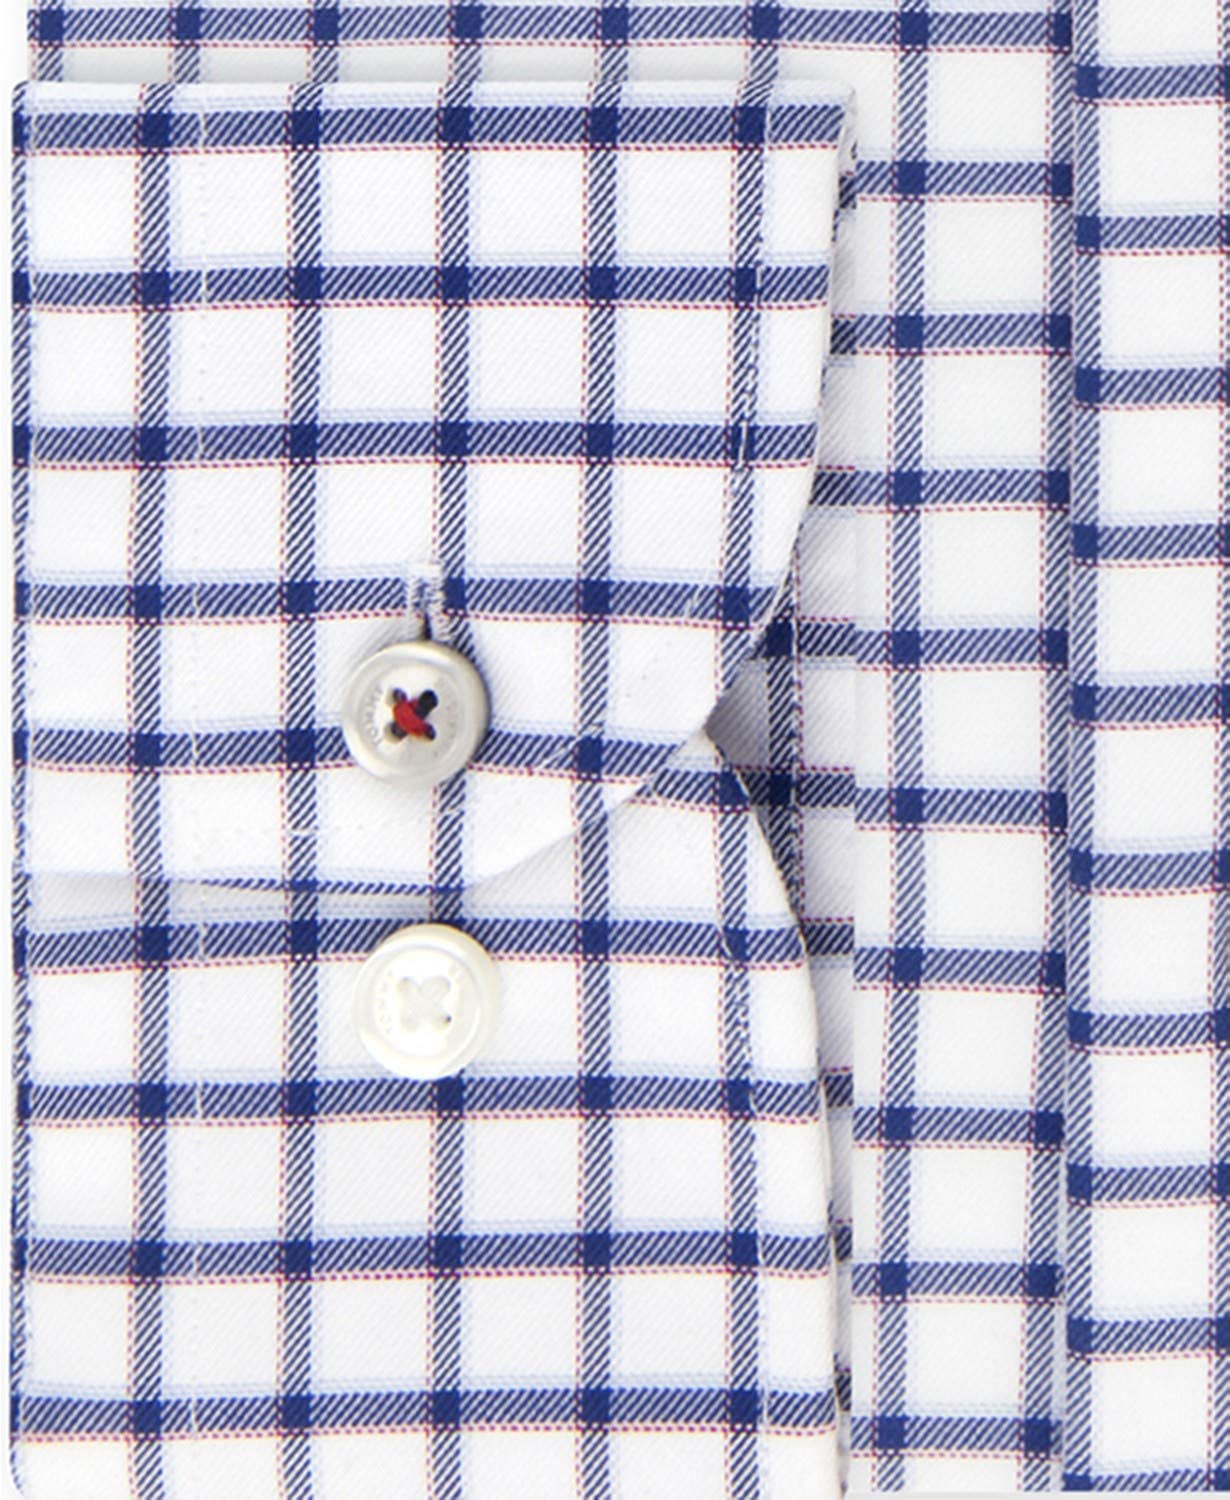 3d83df06 Tommy Hilfiger Men's Big and Tall Slim-Fit TH Flex Dress Shirt, Night Blue  Check, 17.5 35/36 at Amazon Men's Clothing store: